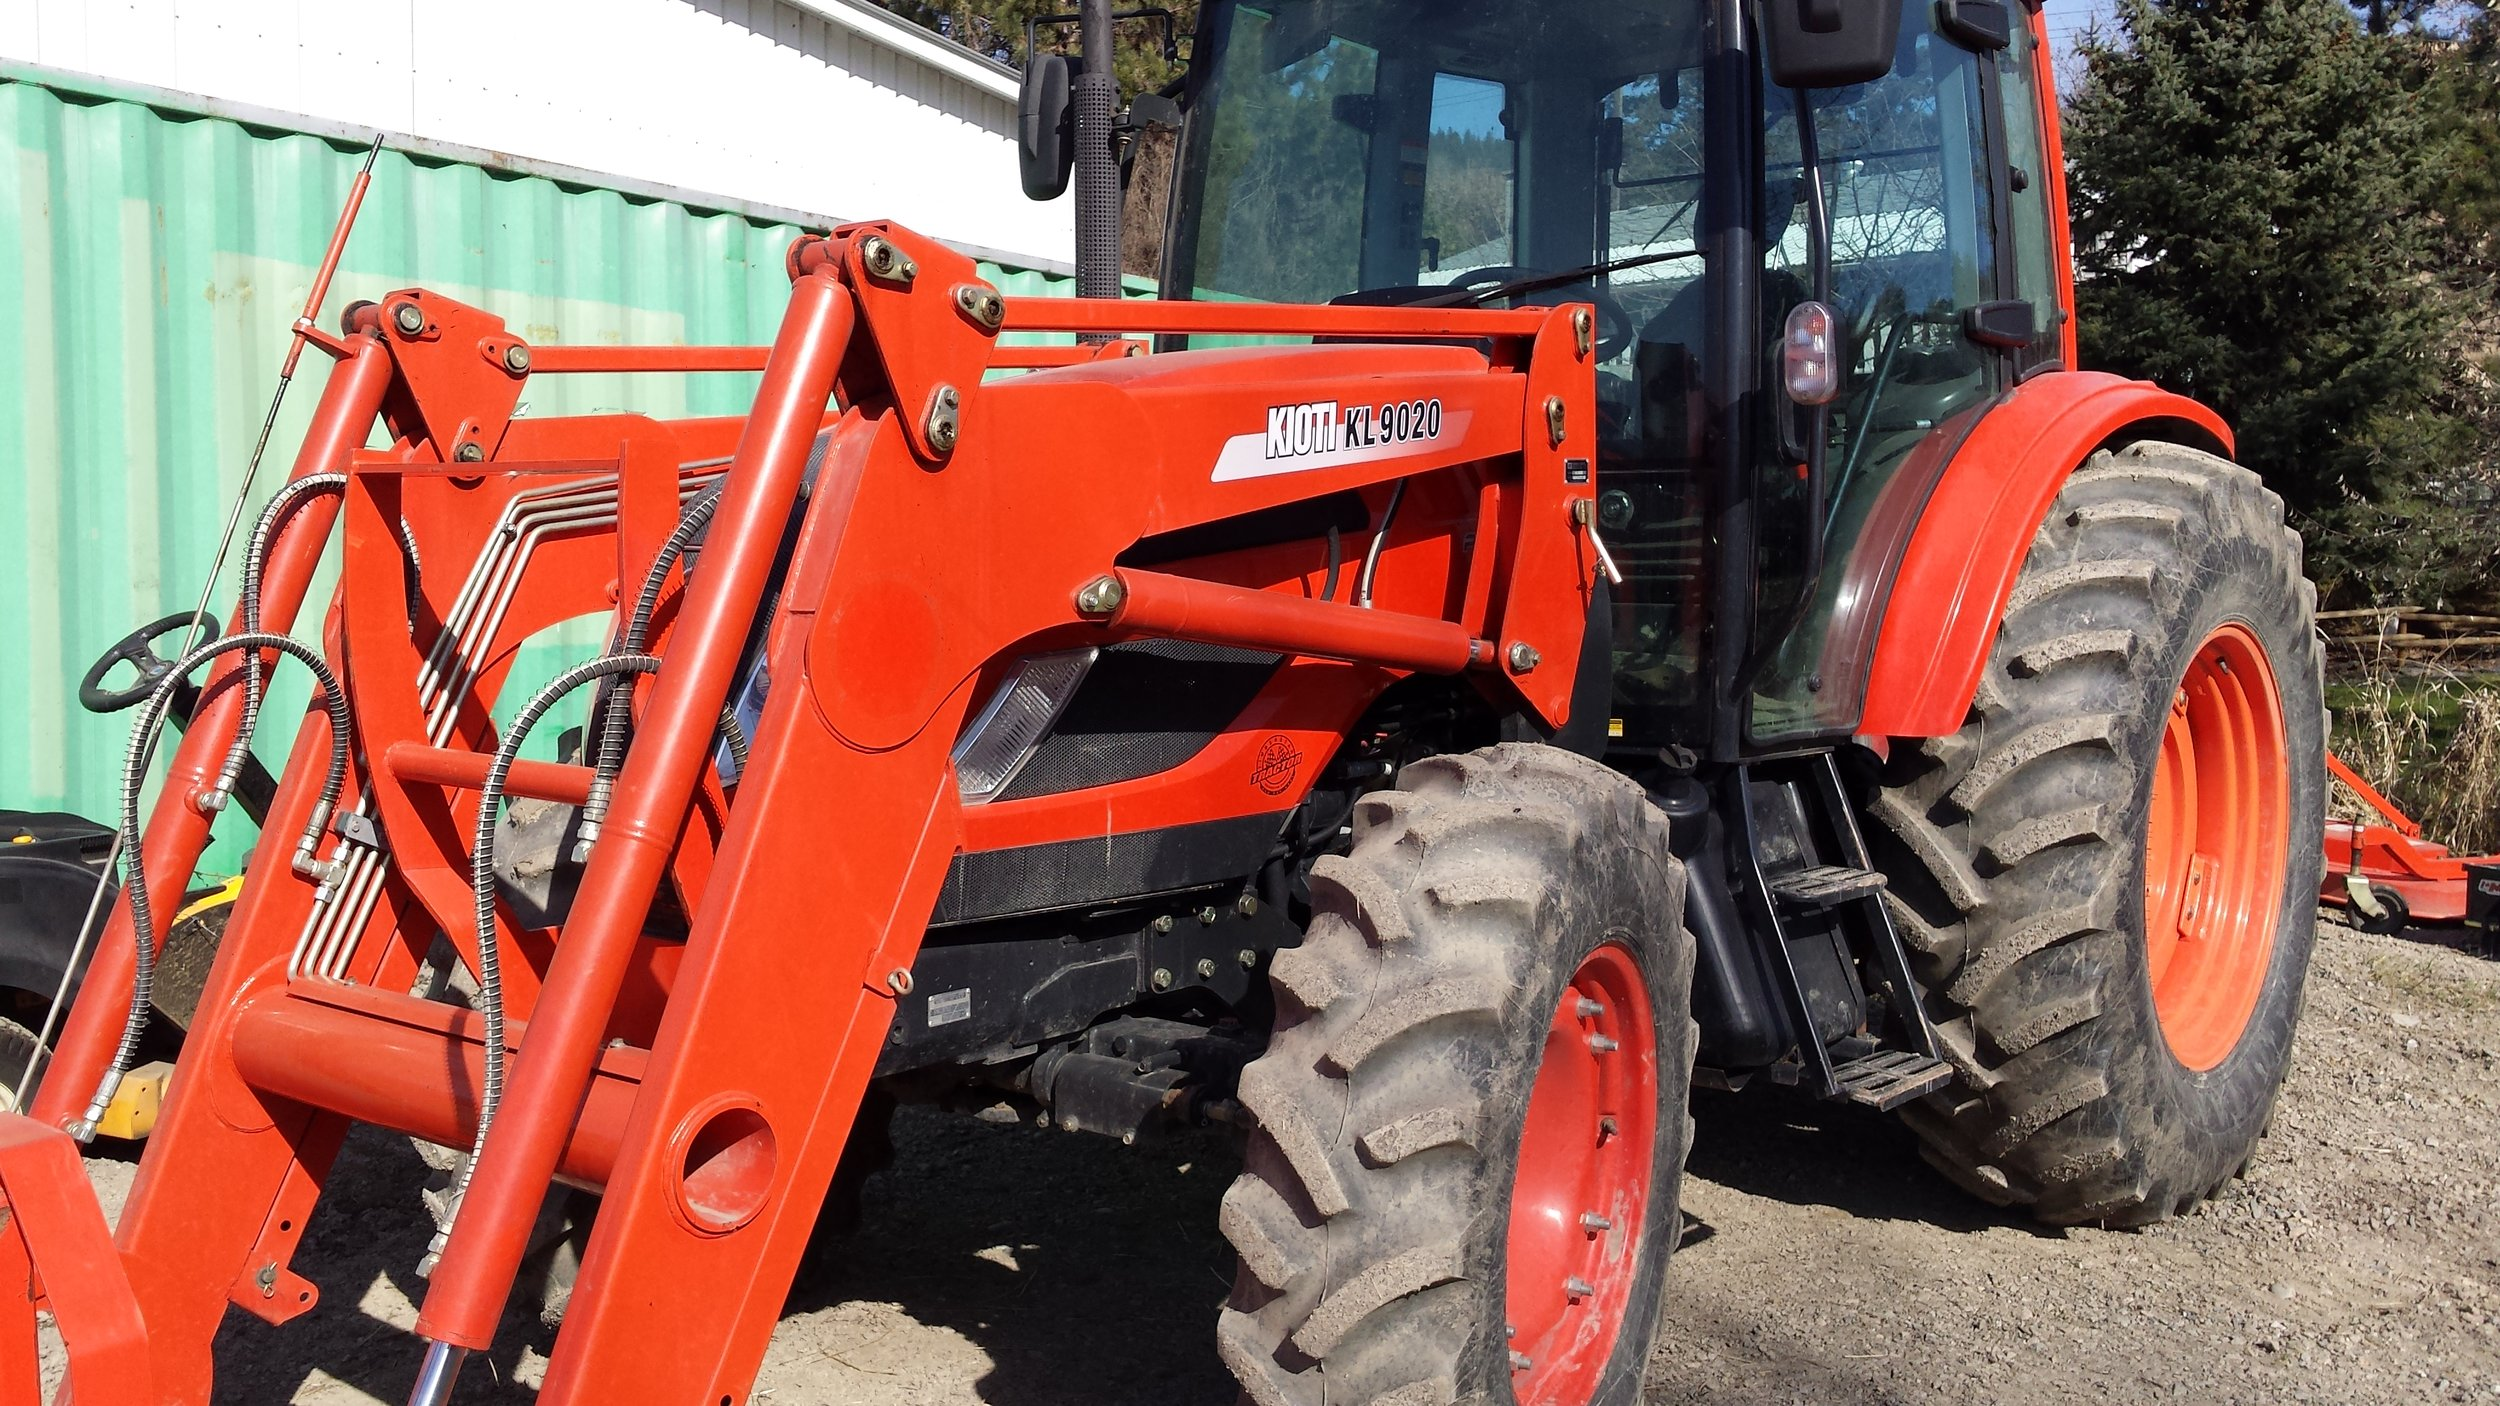 Used PX9020 vernon tractor dealer timberstar tractor front  left view.jpg